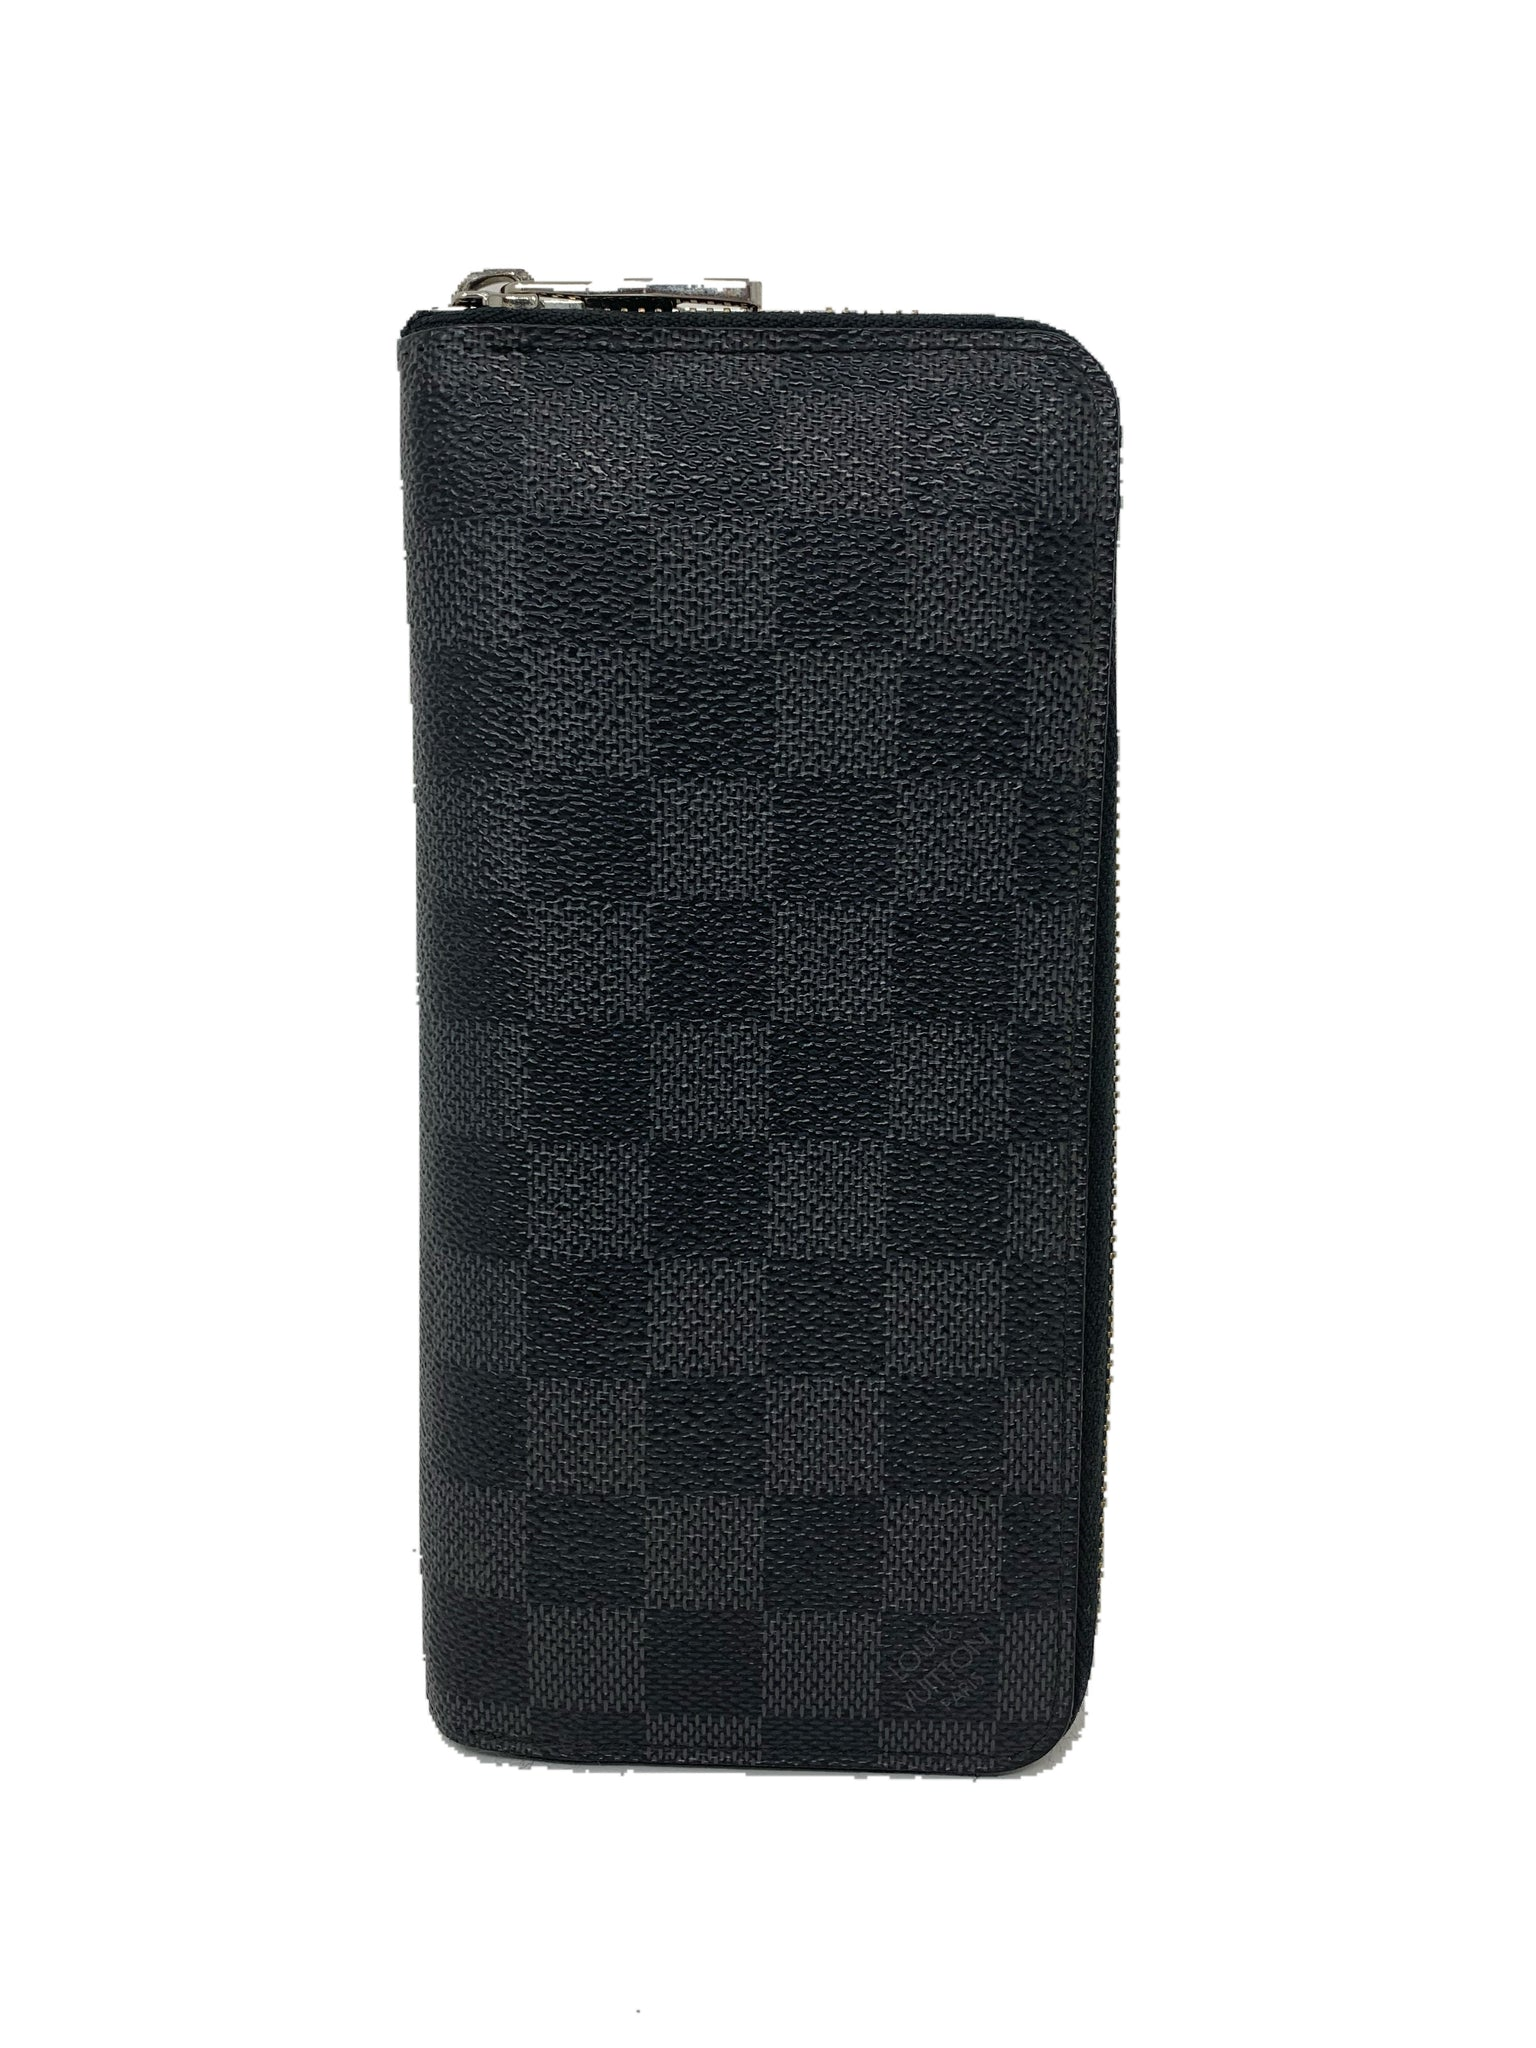 Louis Vuitton Zippy Wallet Vertical Damier Graphite